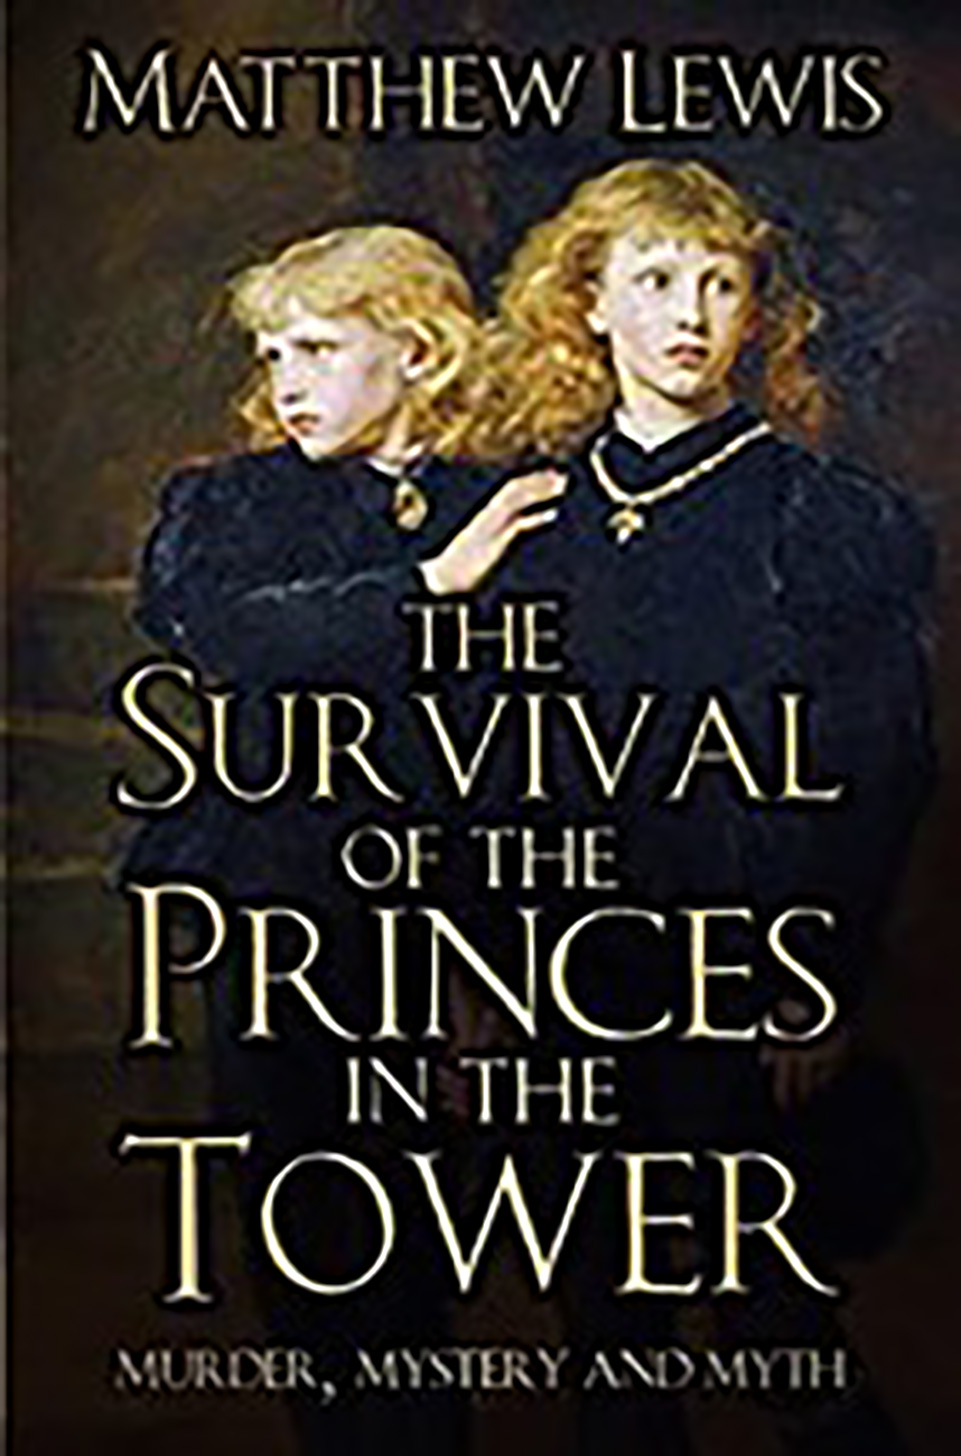 Front cover of a book: The Survival of the Princes in the Tower by Matthew Lewis